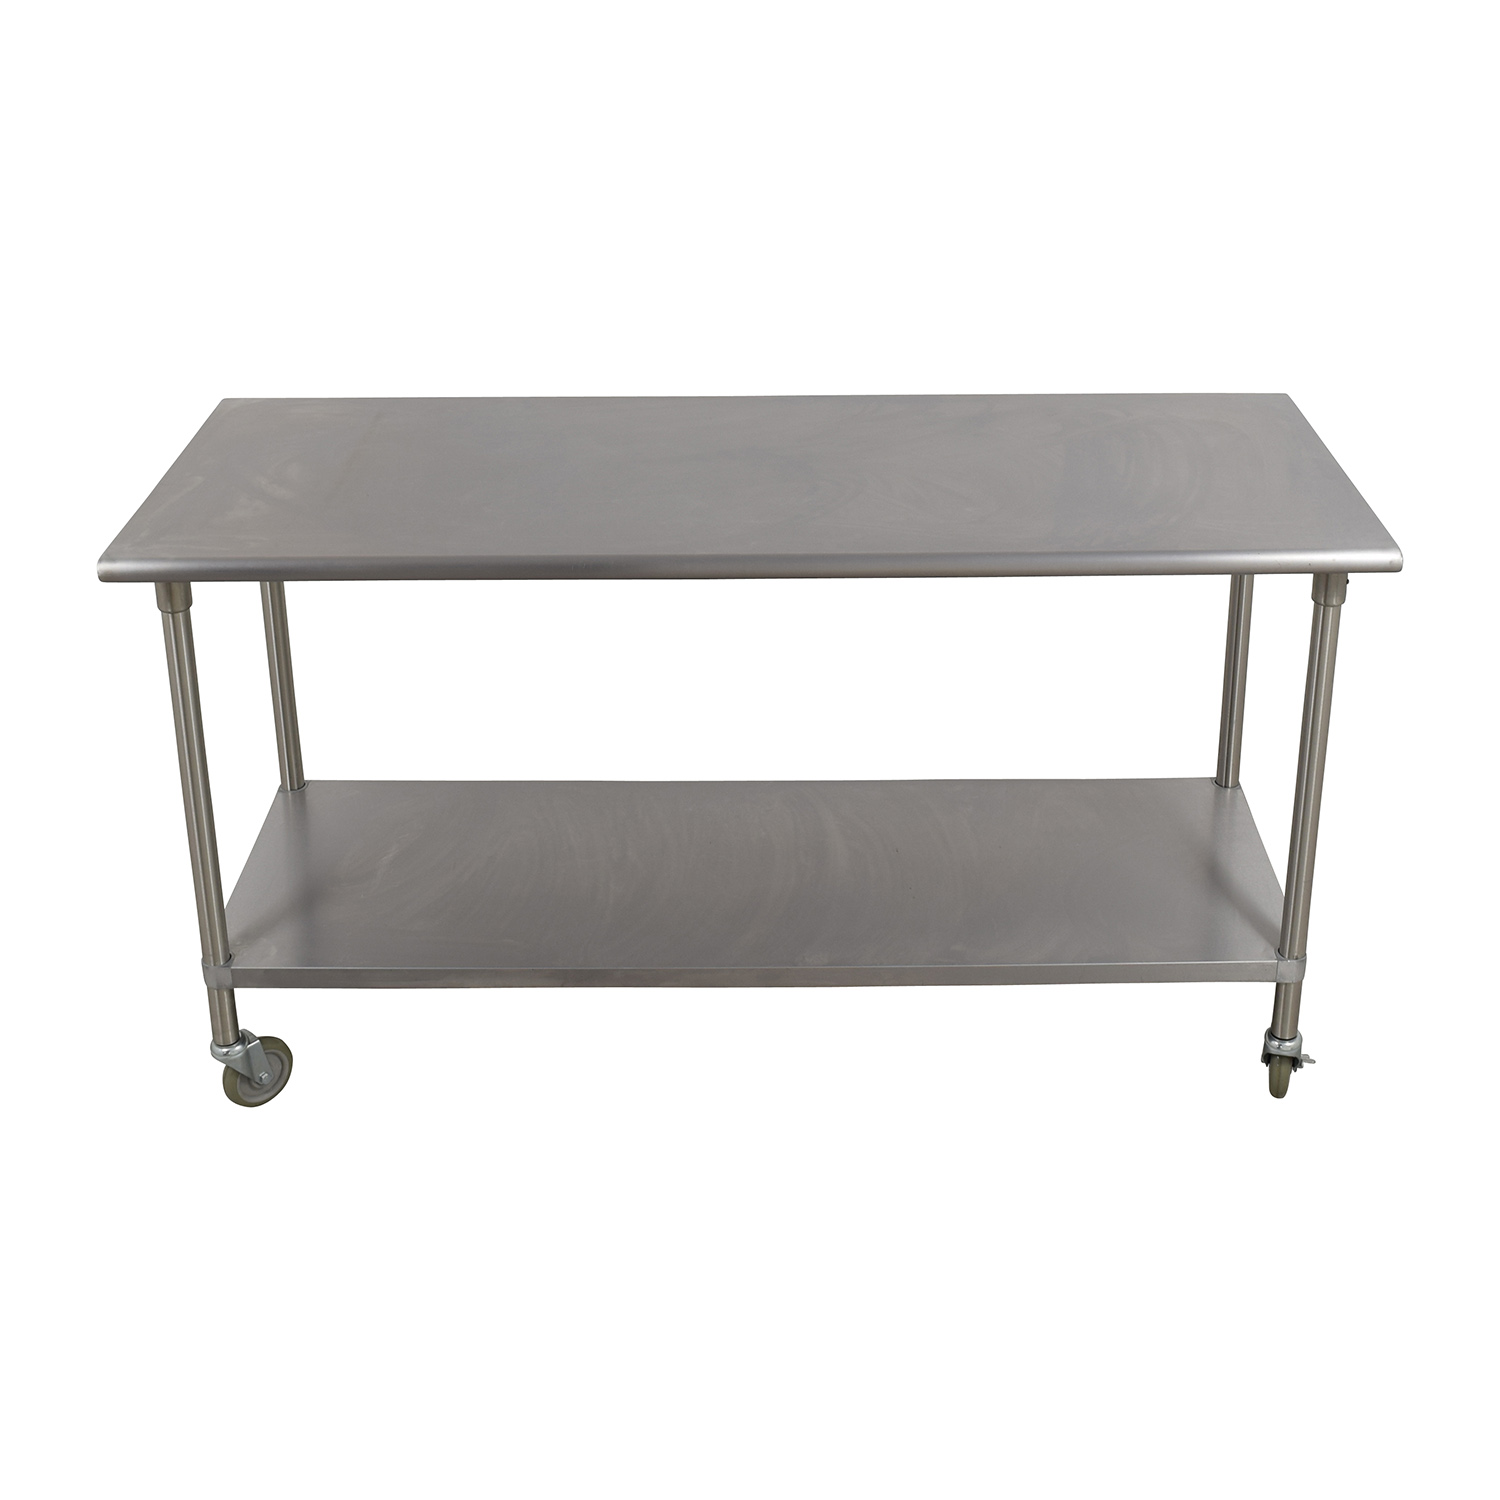 83% OFF - Bowery Kitchen Bowery Kitchen Stainless Steel Table / Tables